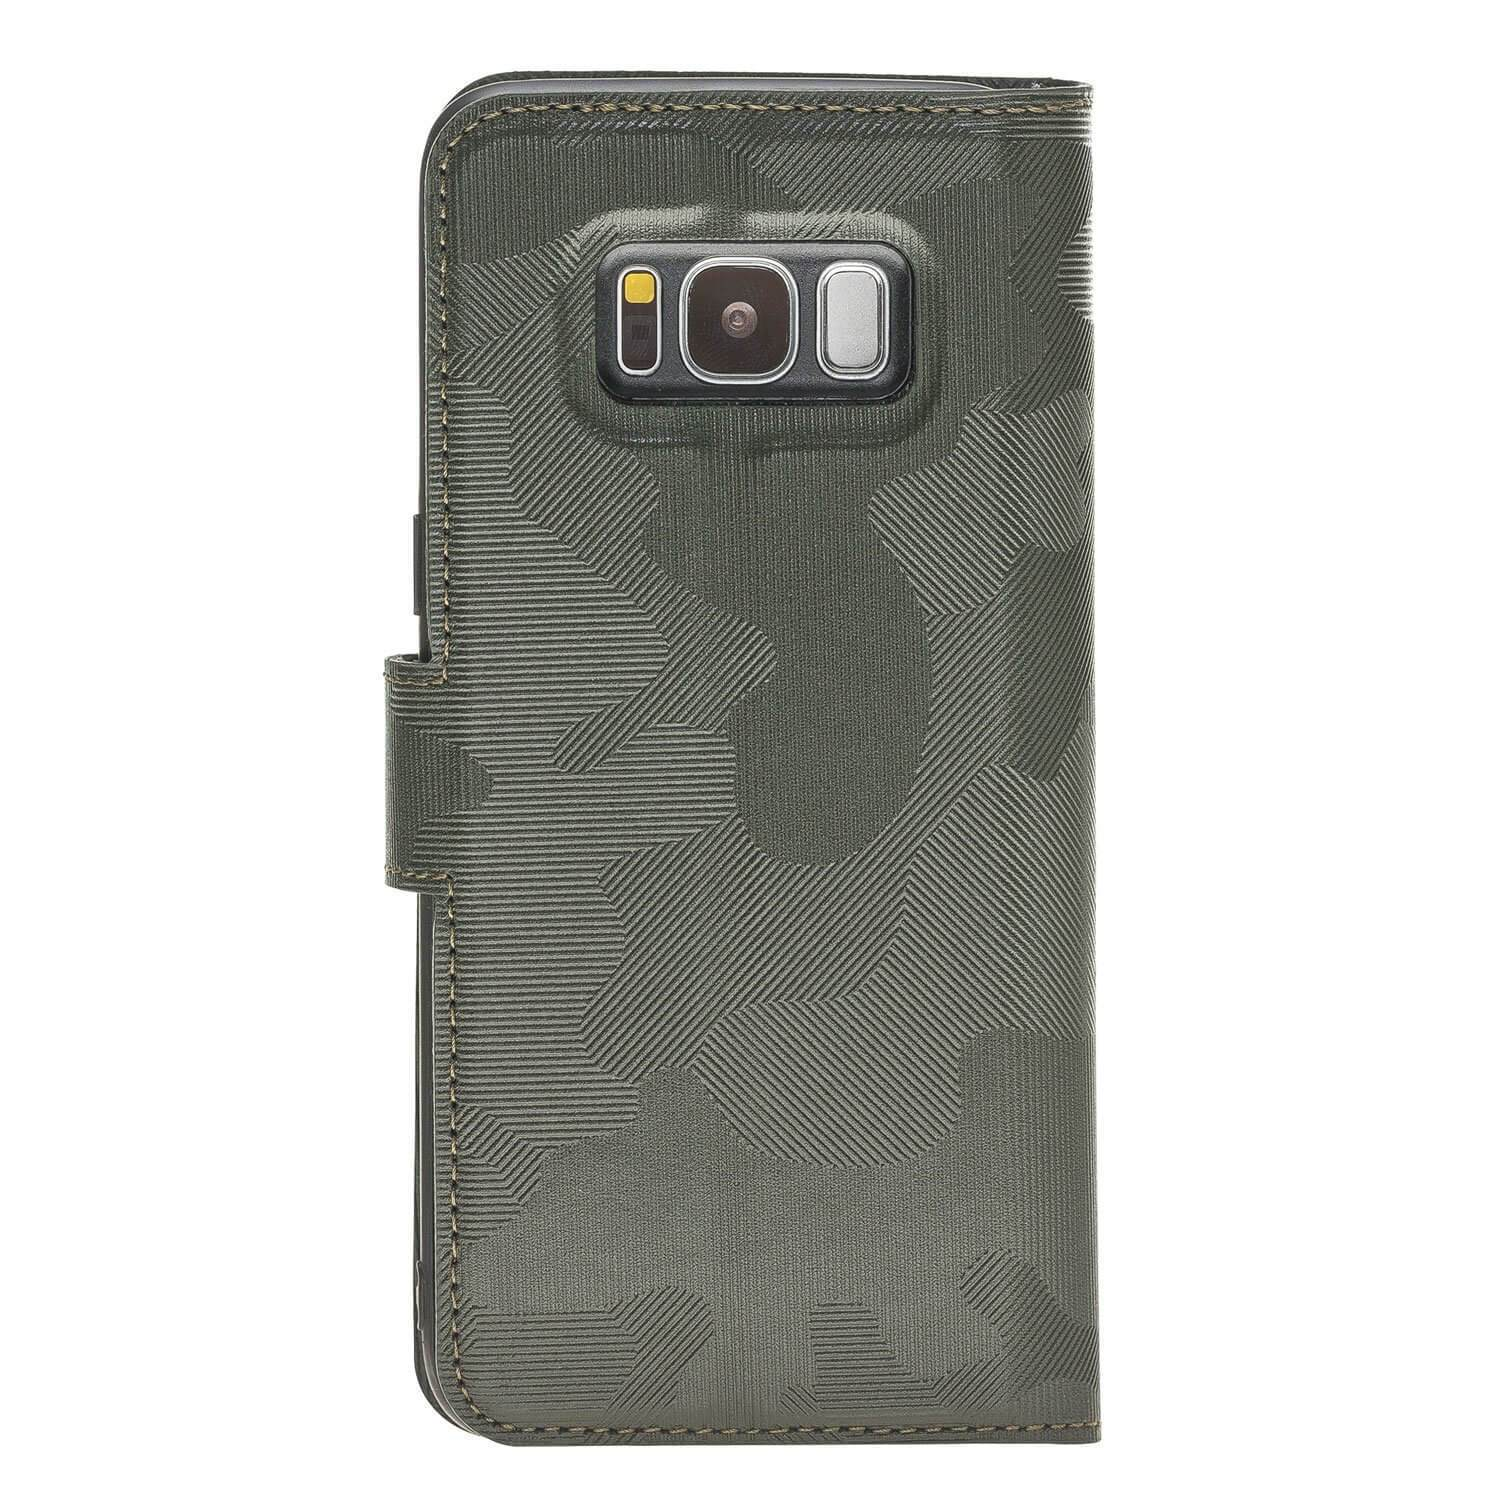 Wallet Case Magnetic Detachable Leather Wallet Case for Samsung S8 - Camouflage Green Bouletta Case